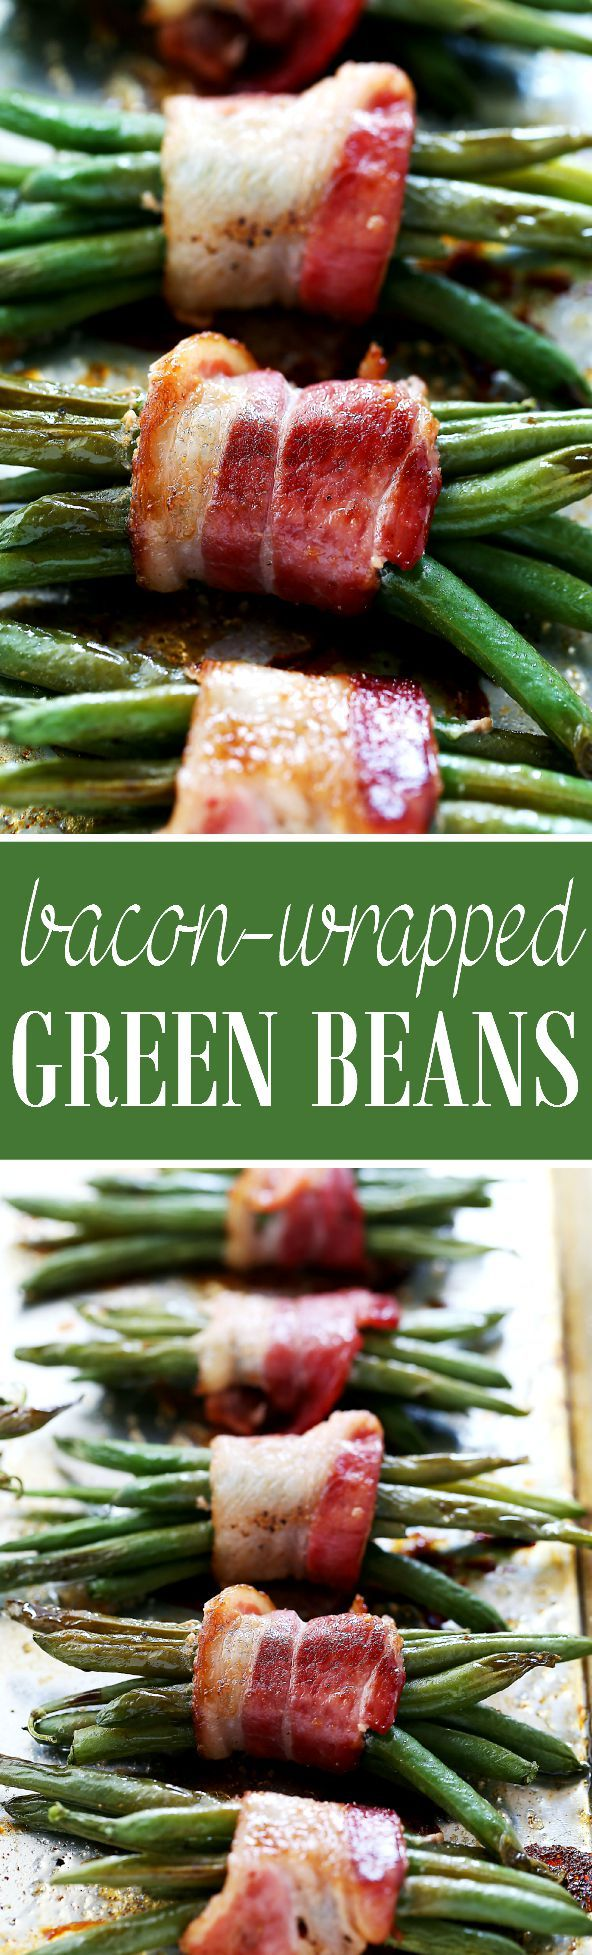 Bacon-Wrapped Green Beans Recipe - Roasted fresh green beans wrapped in bacon and sprinkled with brown sugar and a drizzle of balsamic vinegar.